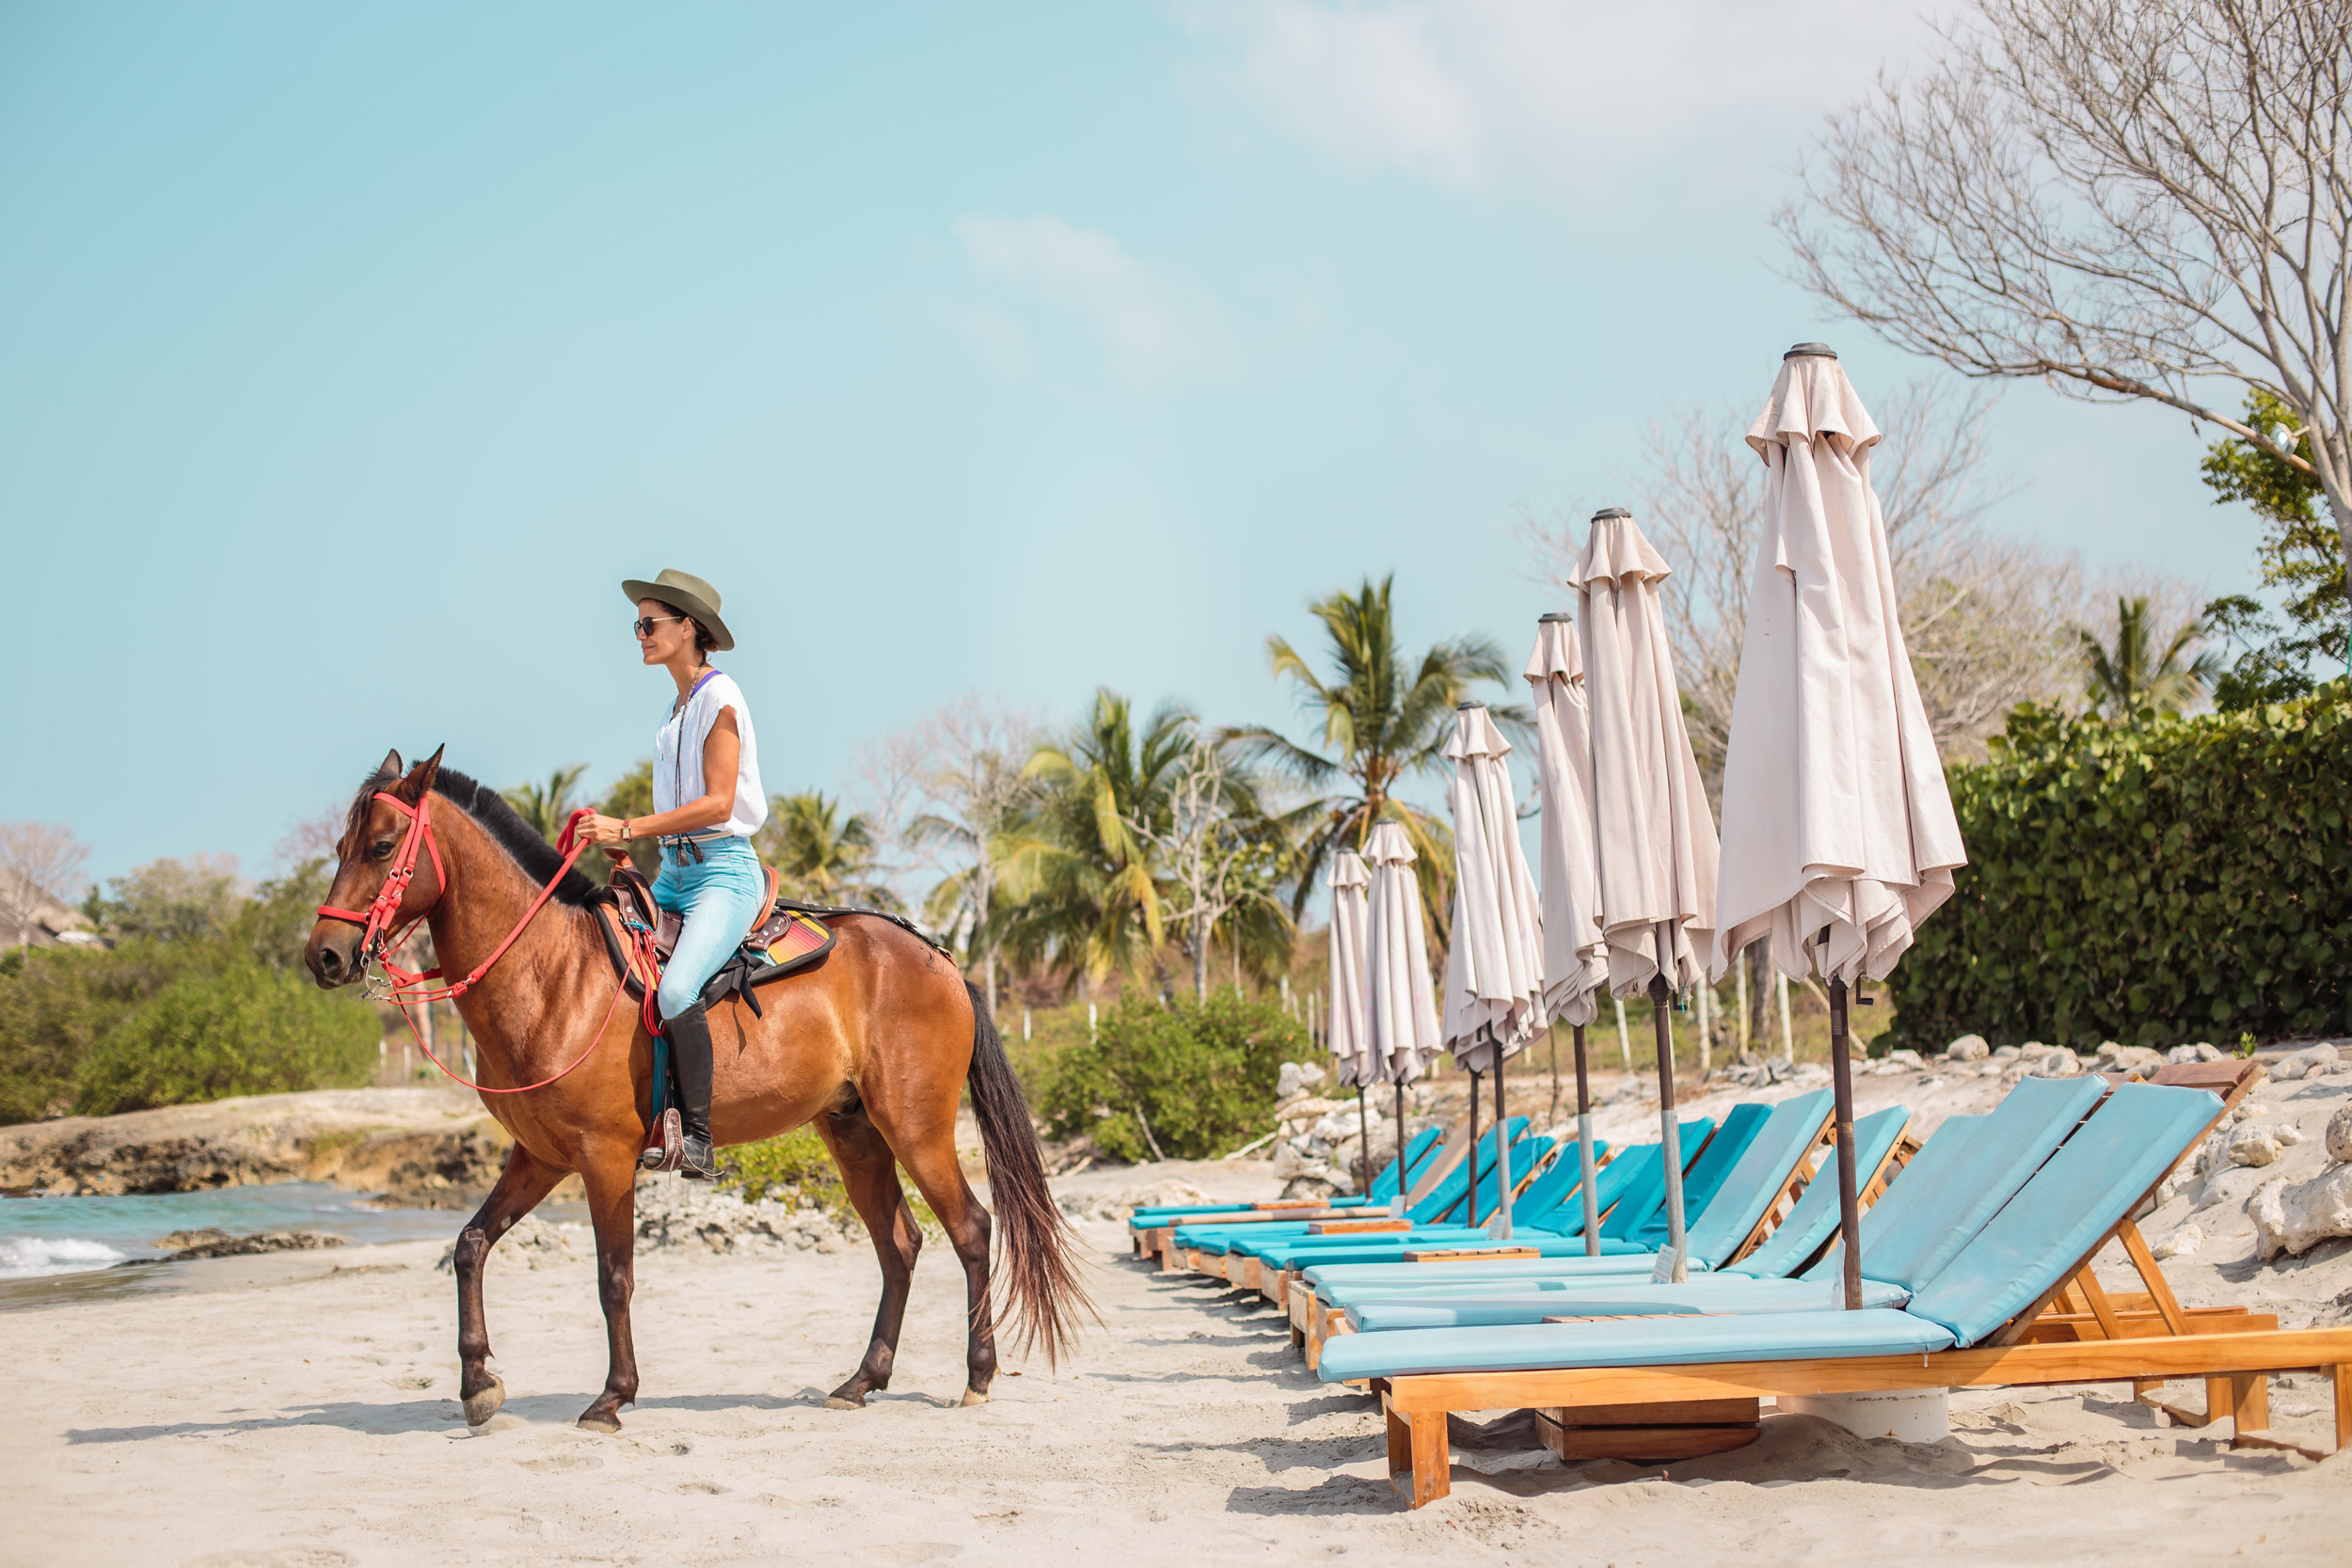 Activities_Horse Riding_Blue Apple Beach.jpg